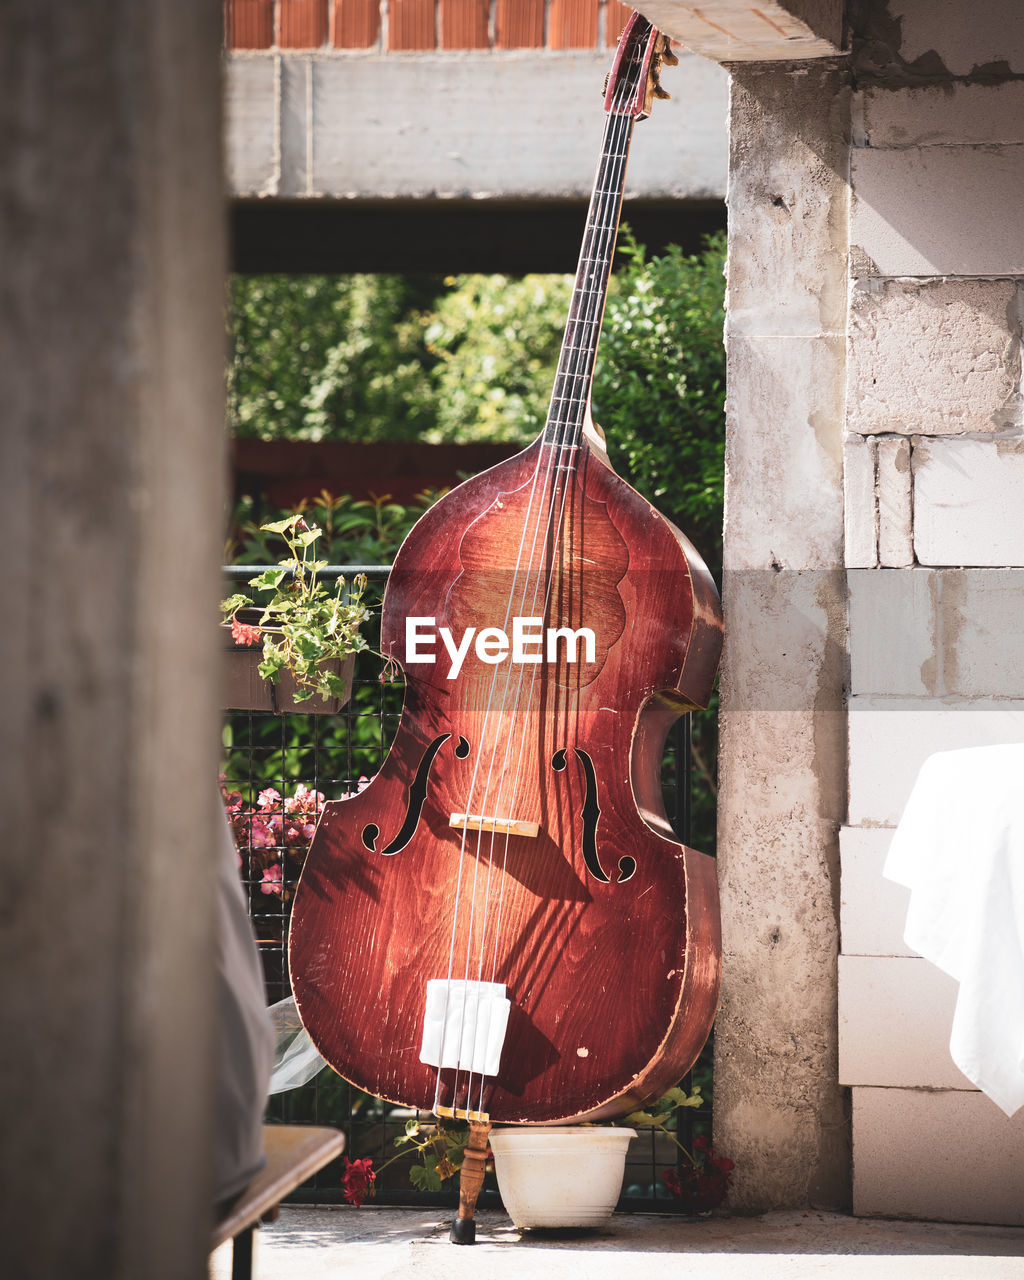 musical instrument, music, string instrument, arts culture and entertainment, string, musical equipment, wood - material, musical instrument string, day, no people, violin, cello, close-up, hanging, outdoors, nature, still life, brown, architecture, man made, double bass